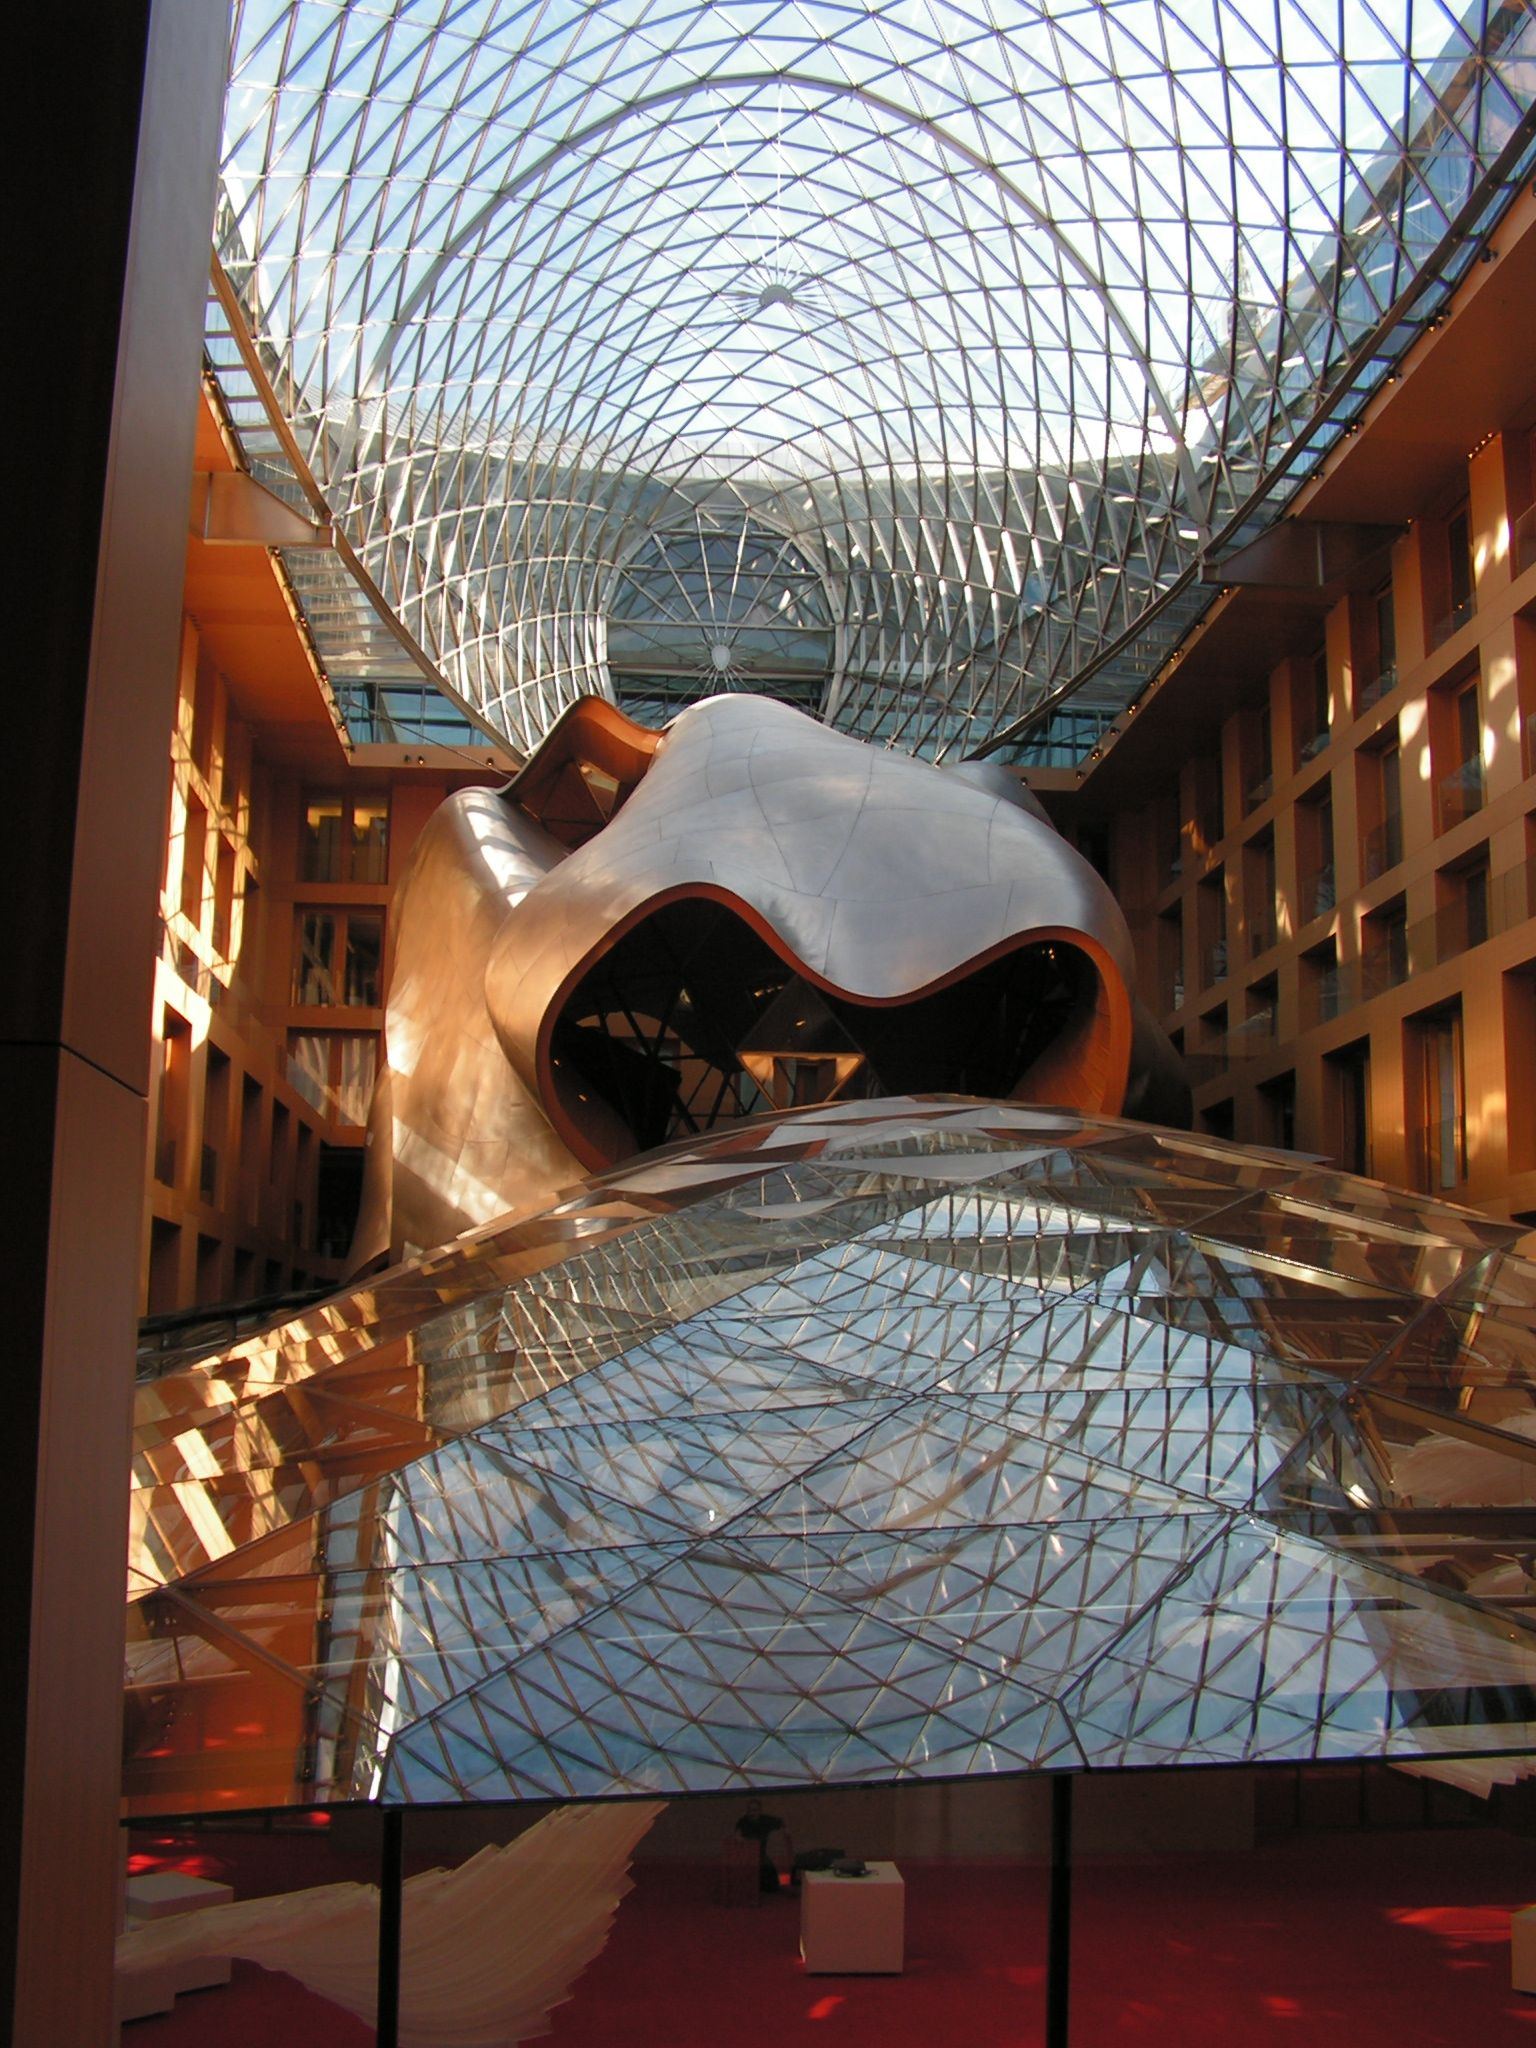 Dz Bank Frank Gehry Architect Gehry Architecture Architecture Details Parametric Architecture